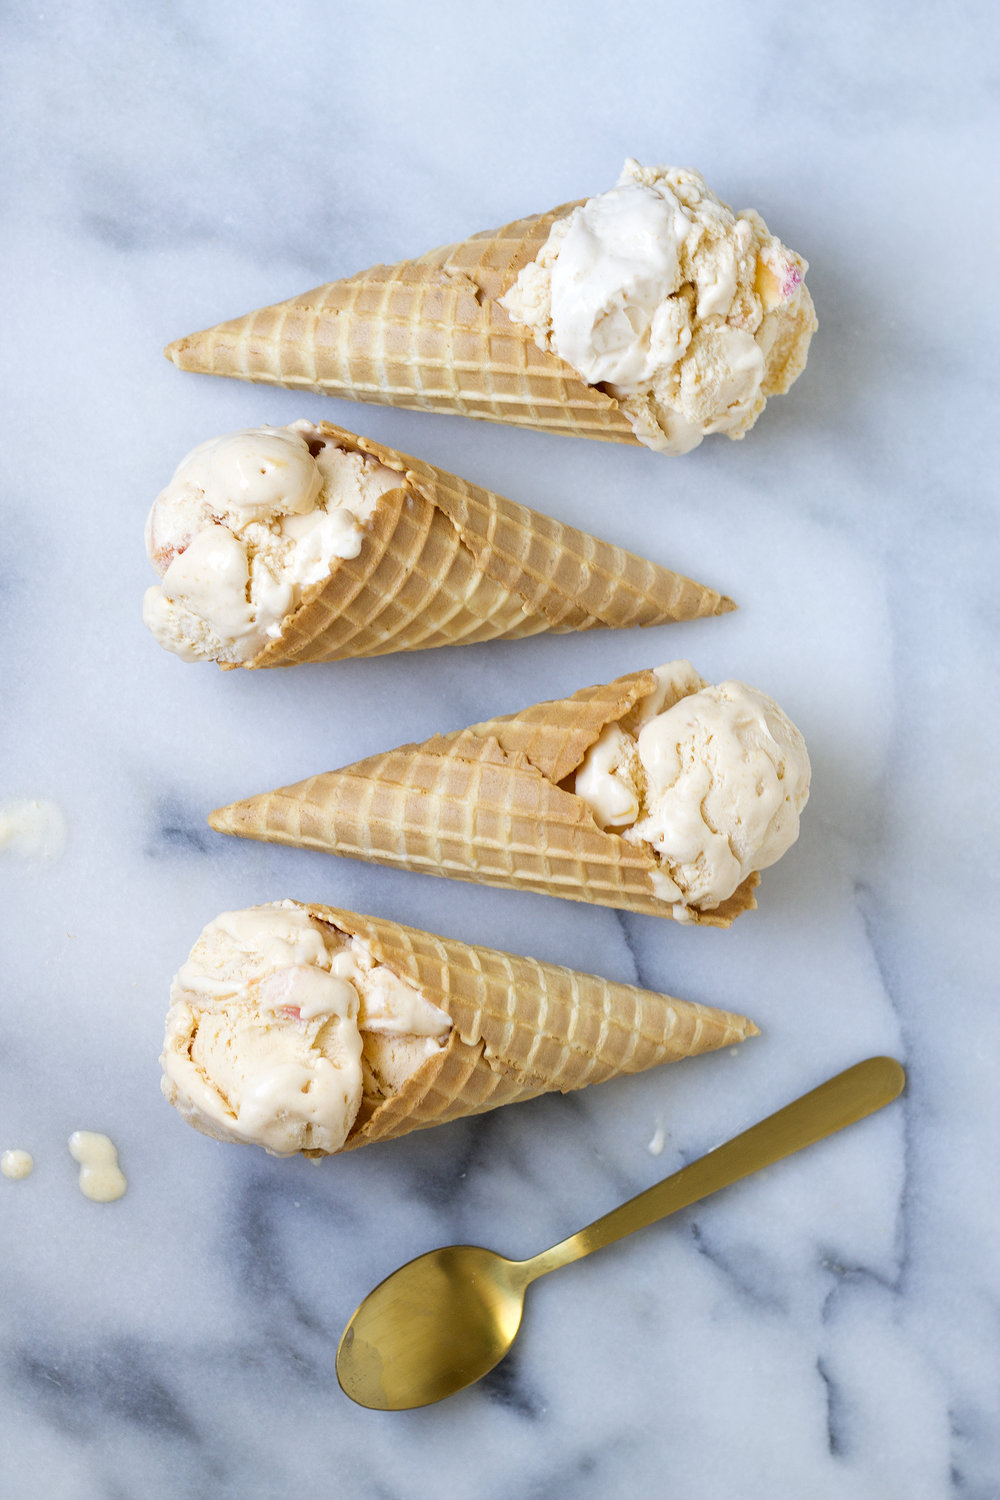 Peach Ice Cream via UnusuallyLovely.com